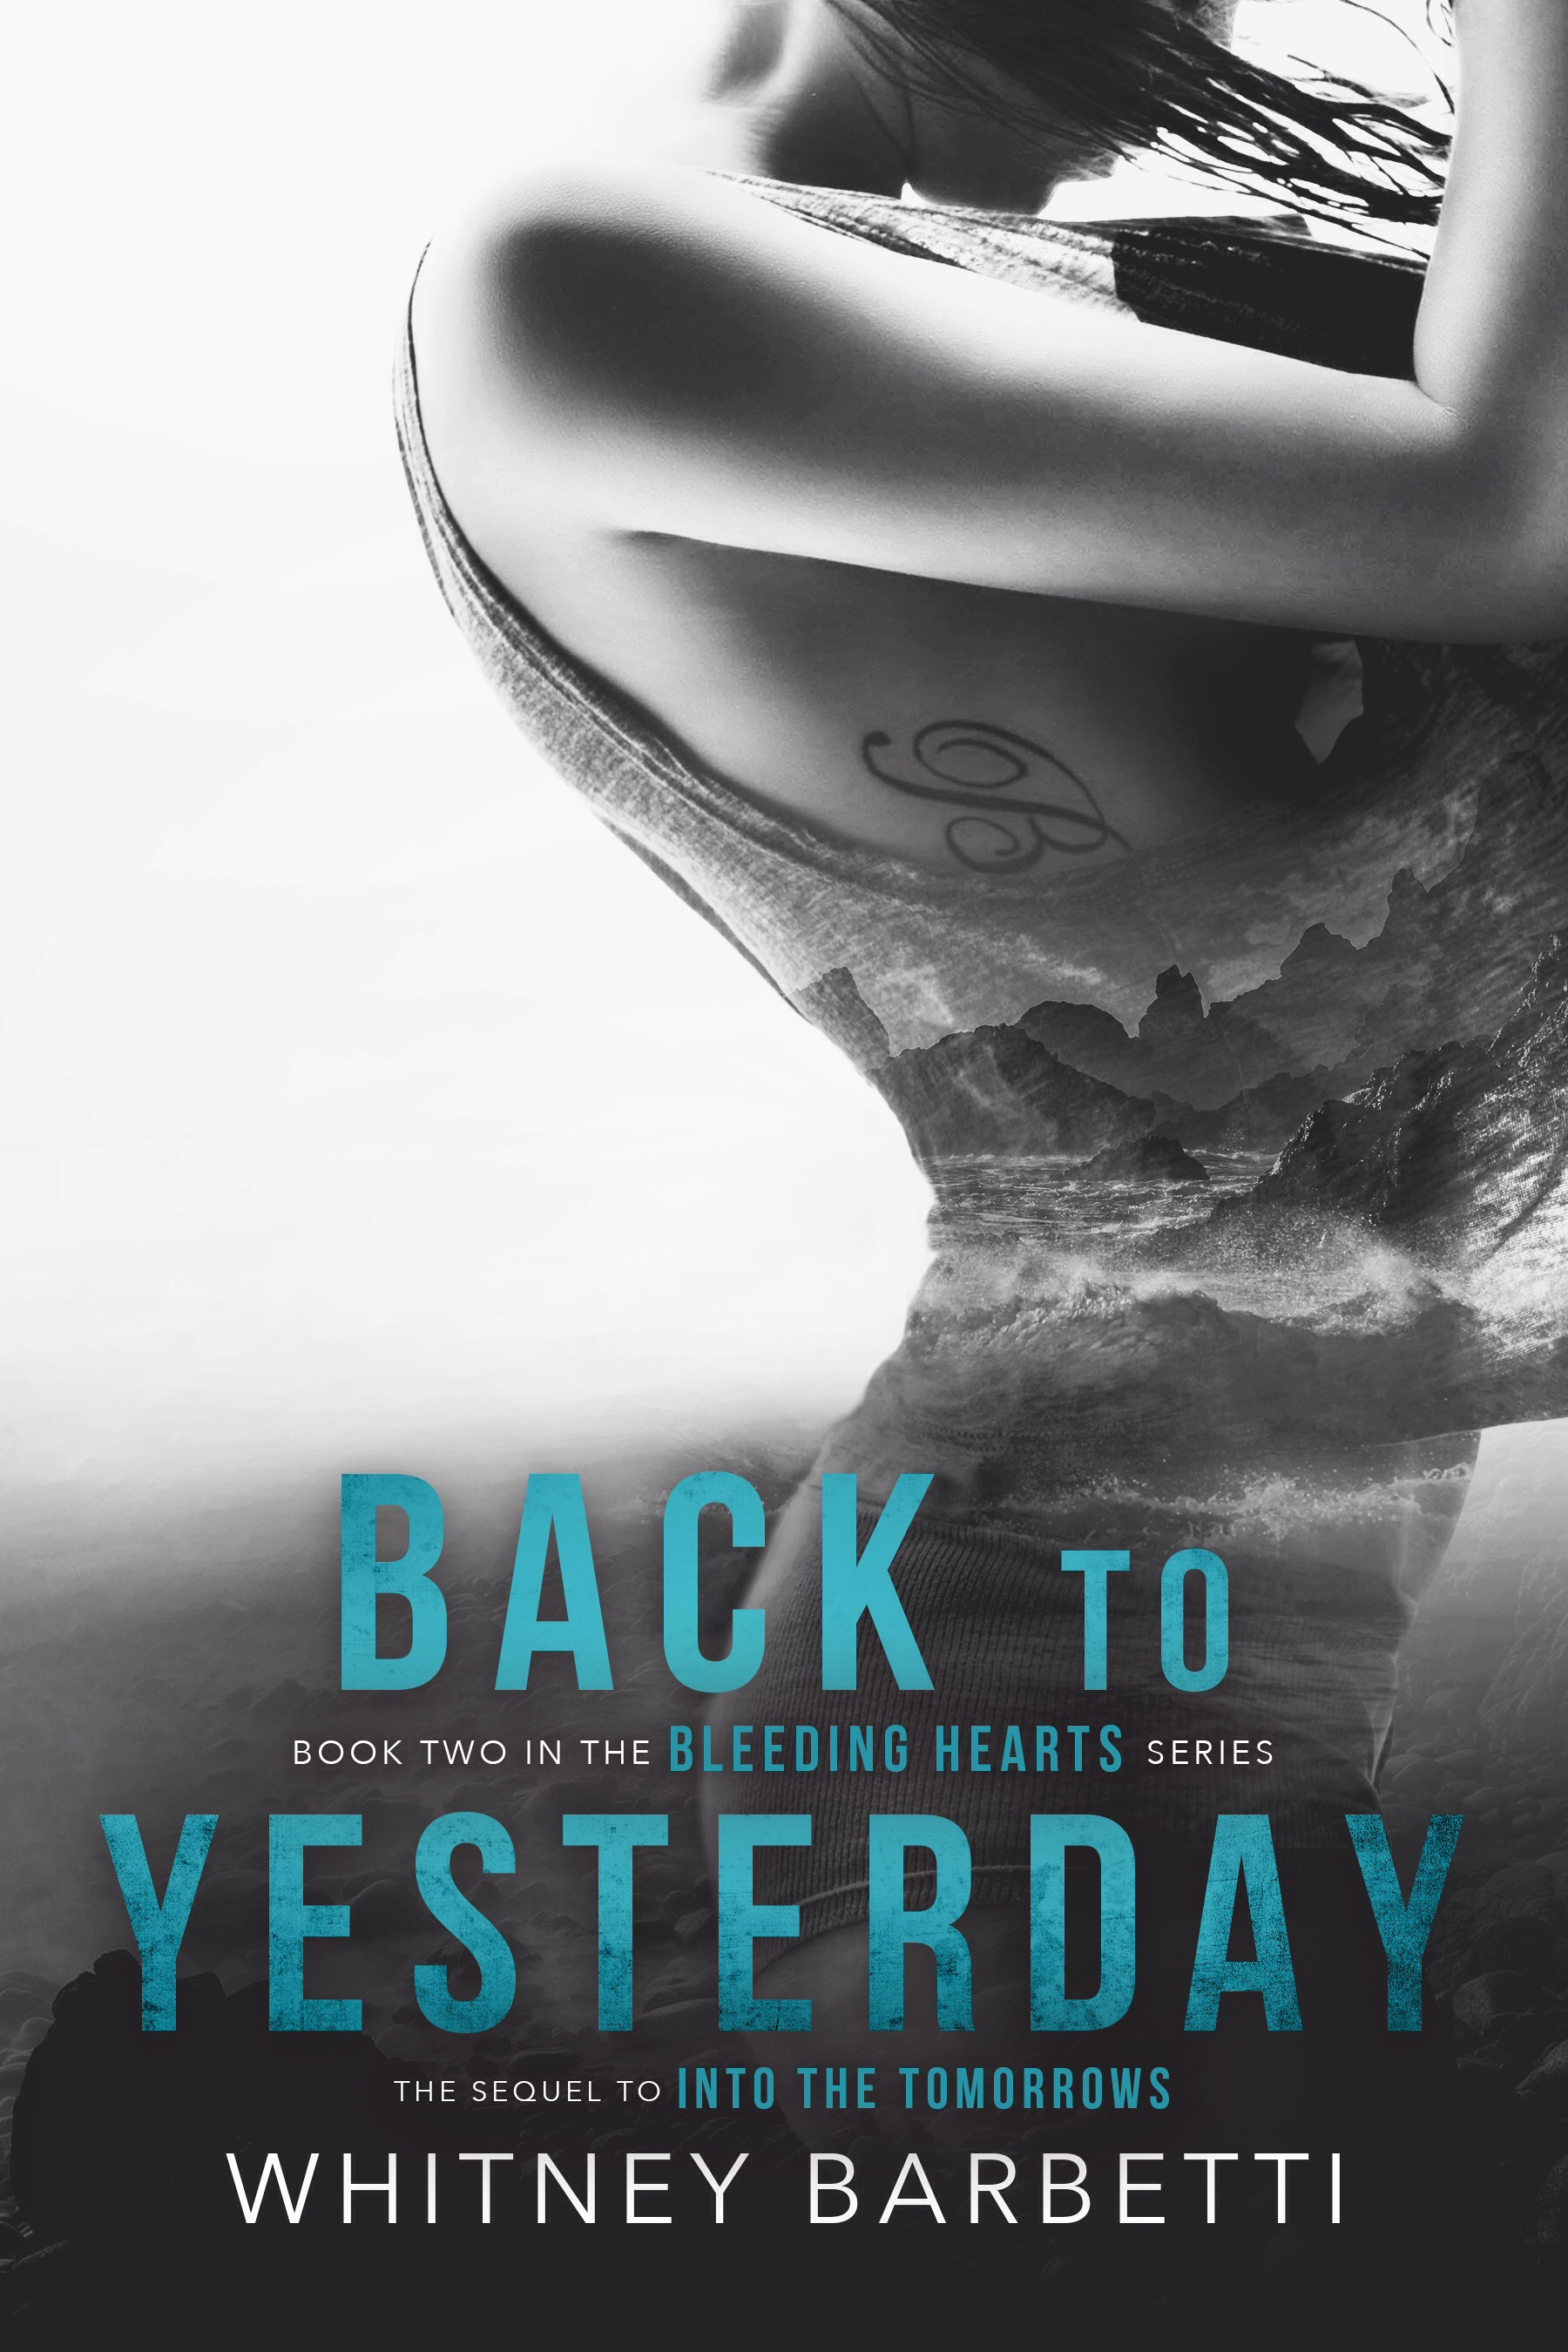 Back to Yesterday by Whitney Barbetti